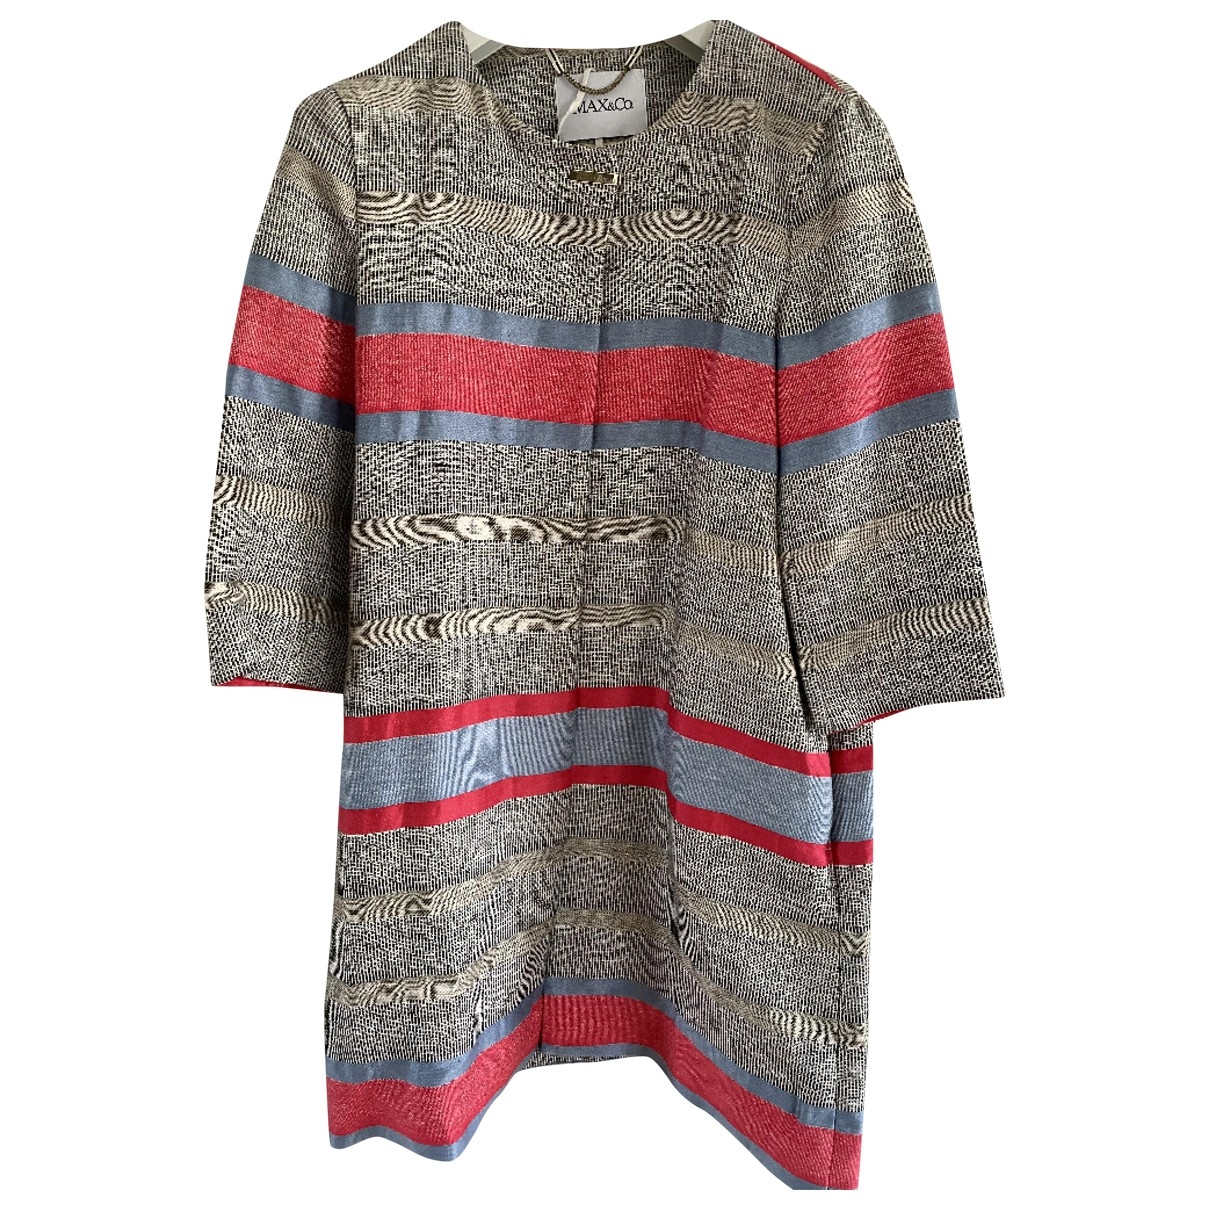 Max & Co \N Cotton coat for Women 36 FR